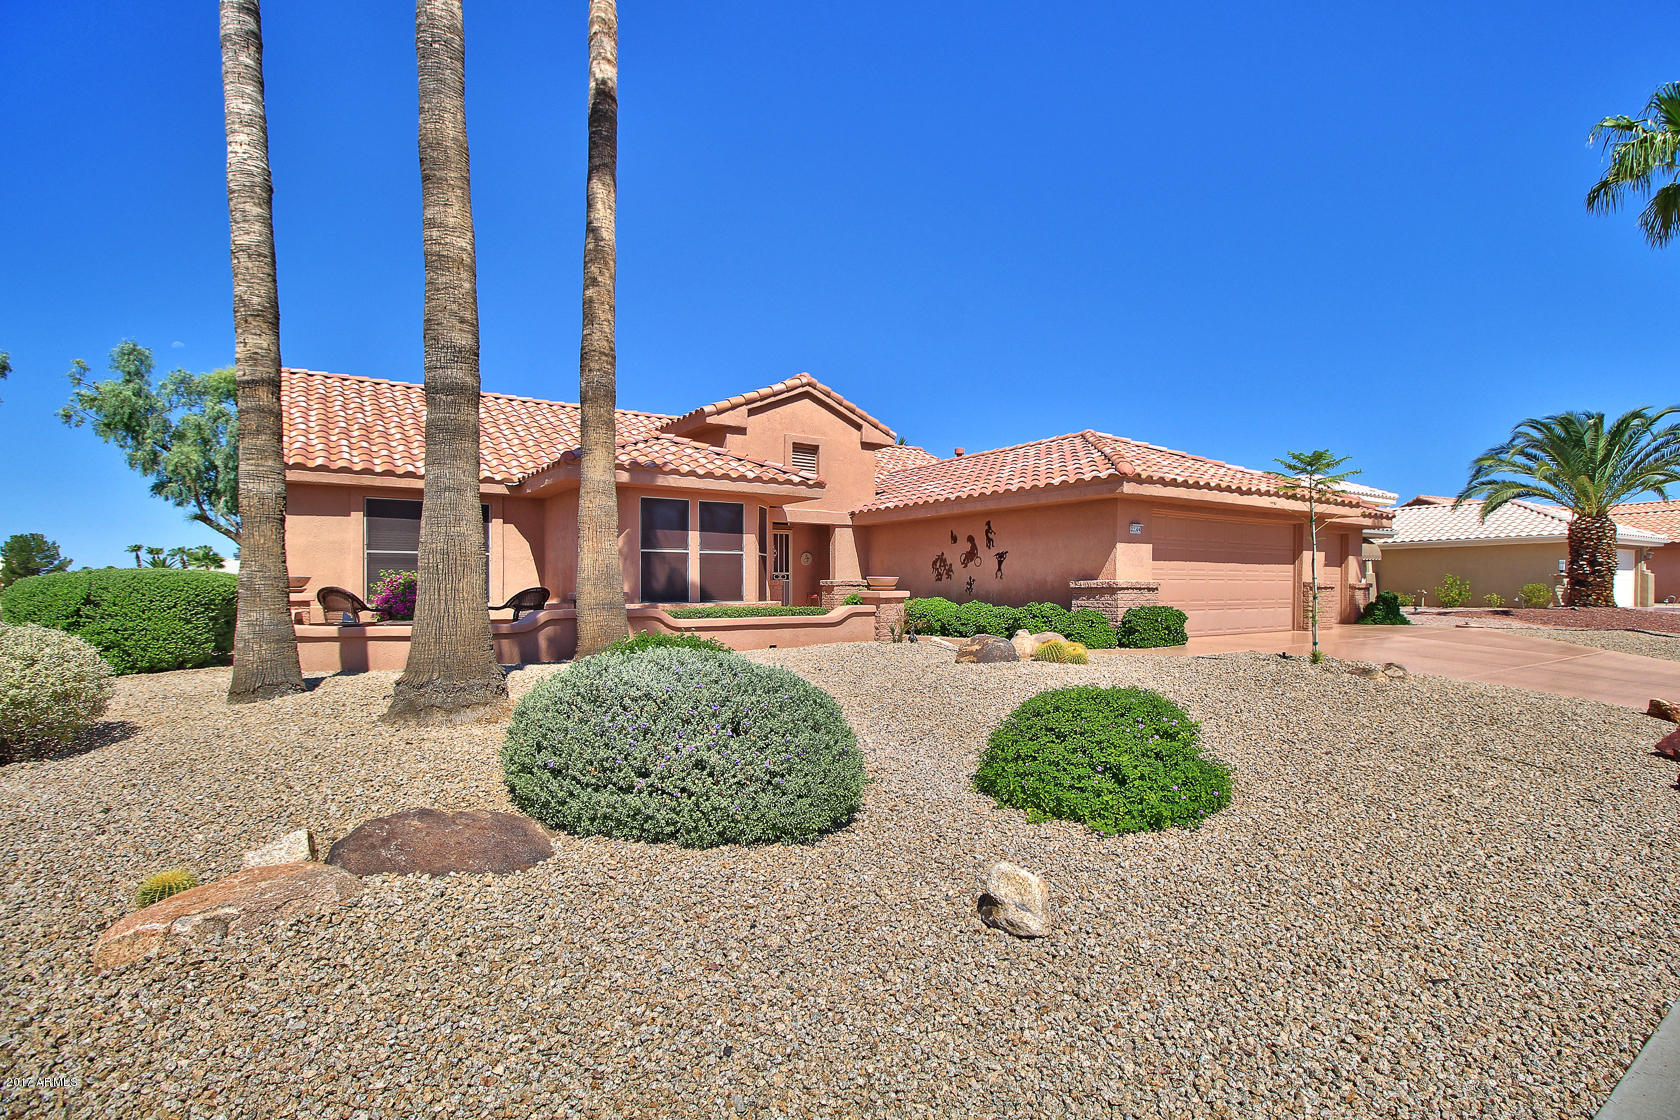 22304 N VIA MONTOYA, SUN CITY WEST, AZ 85375